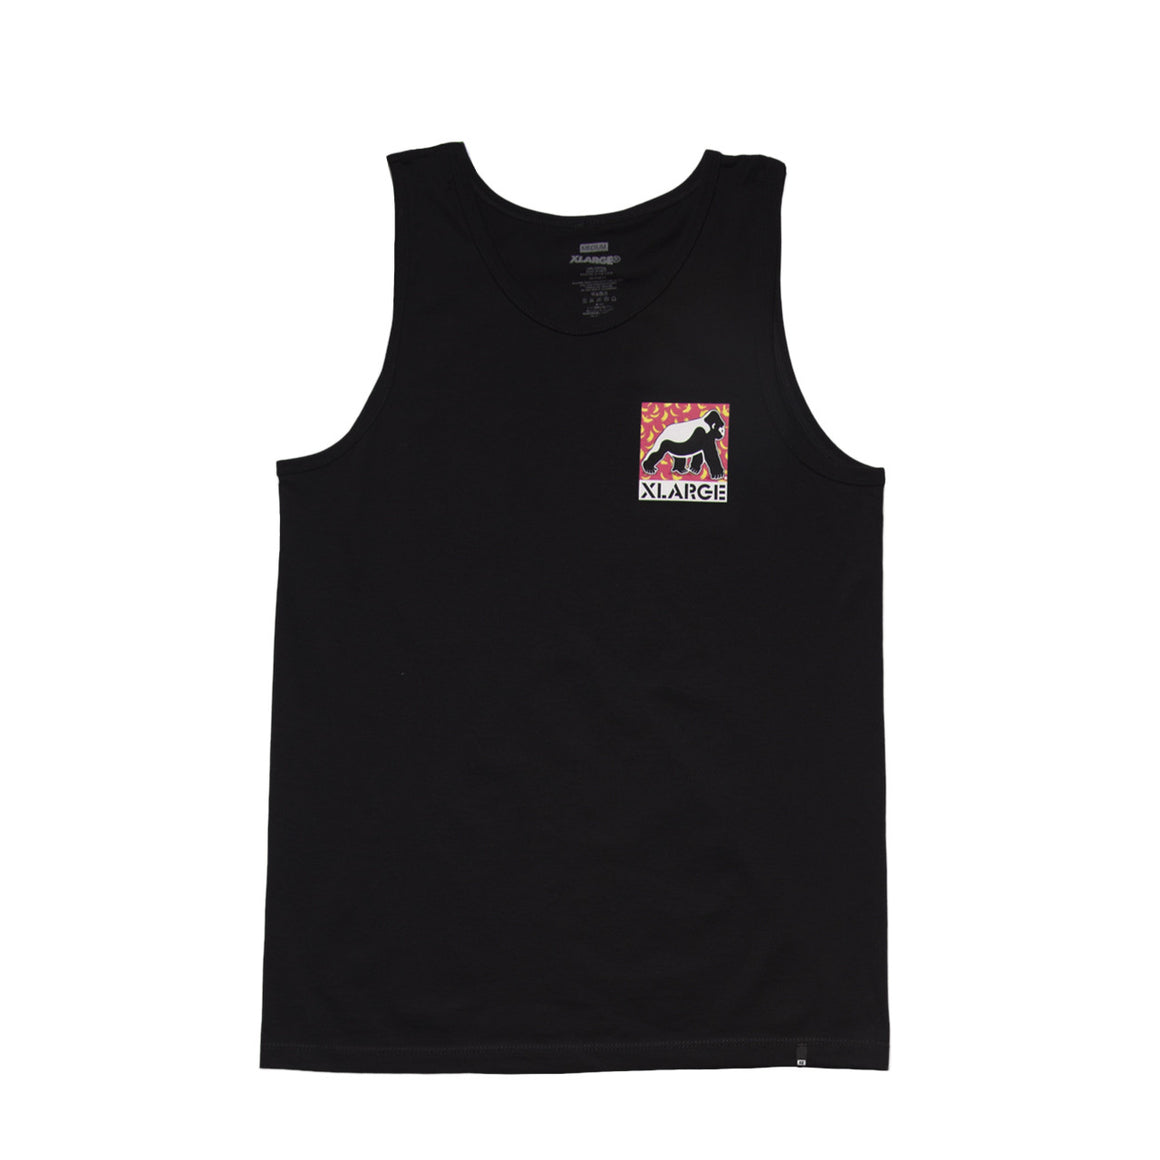 BIG DAWG TANK TOP - X-Large Clothing